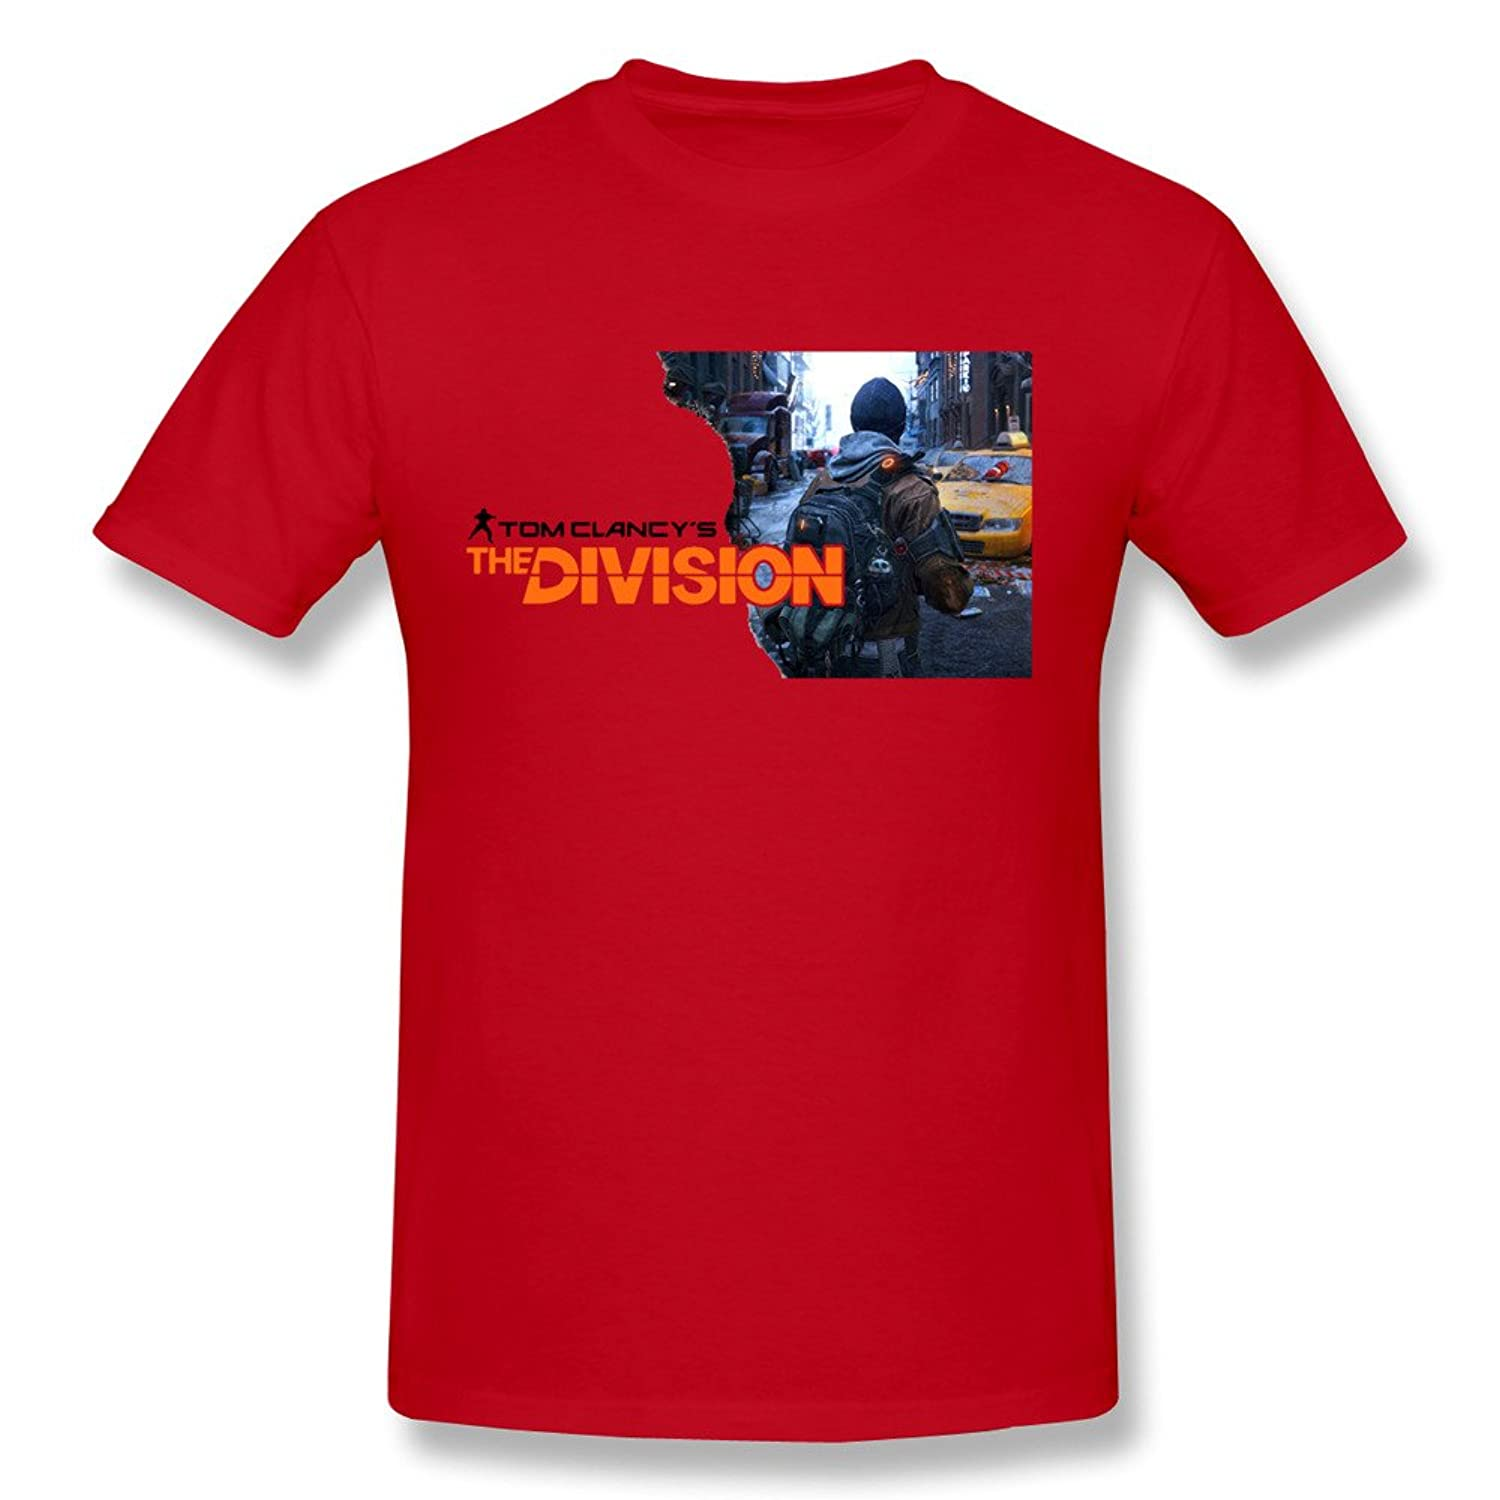 Handson Men's Division Tom Clancy's Agent Logo Funny Game Screw-Neck Tees DeepHeather